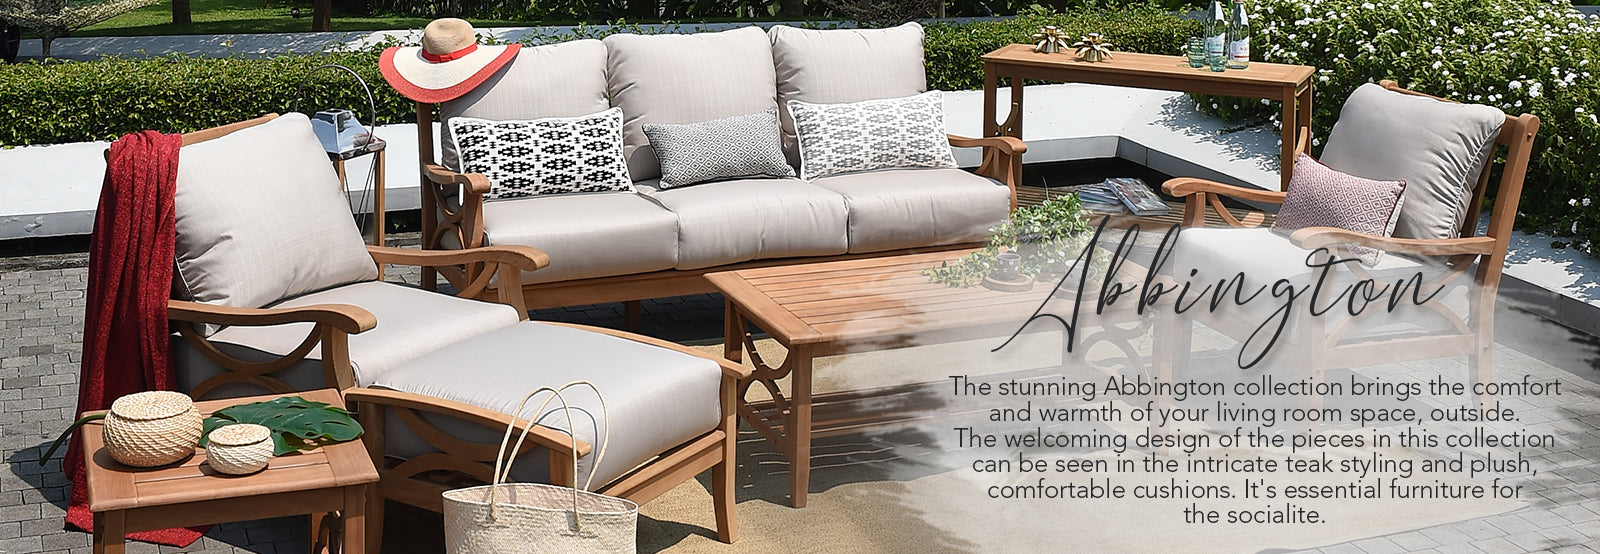 Explore the Abbington collection from Cambridge Casual today. Elegant looks and extreme comfort will brighten up your garden.